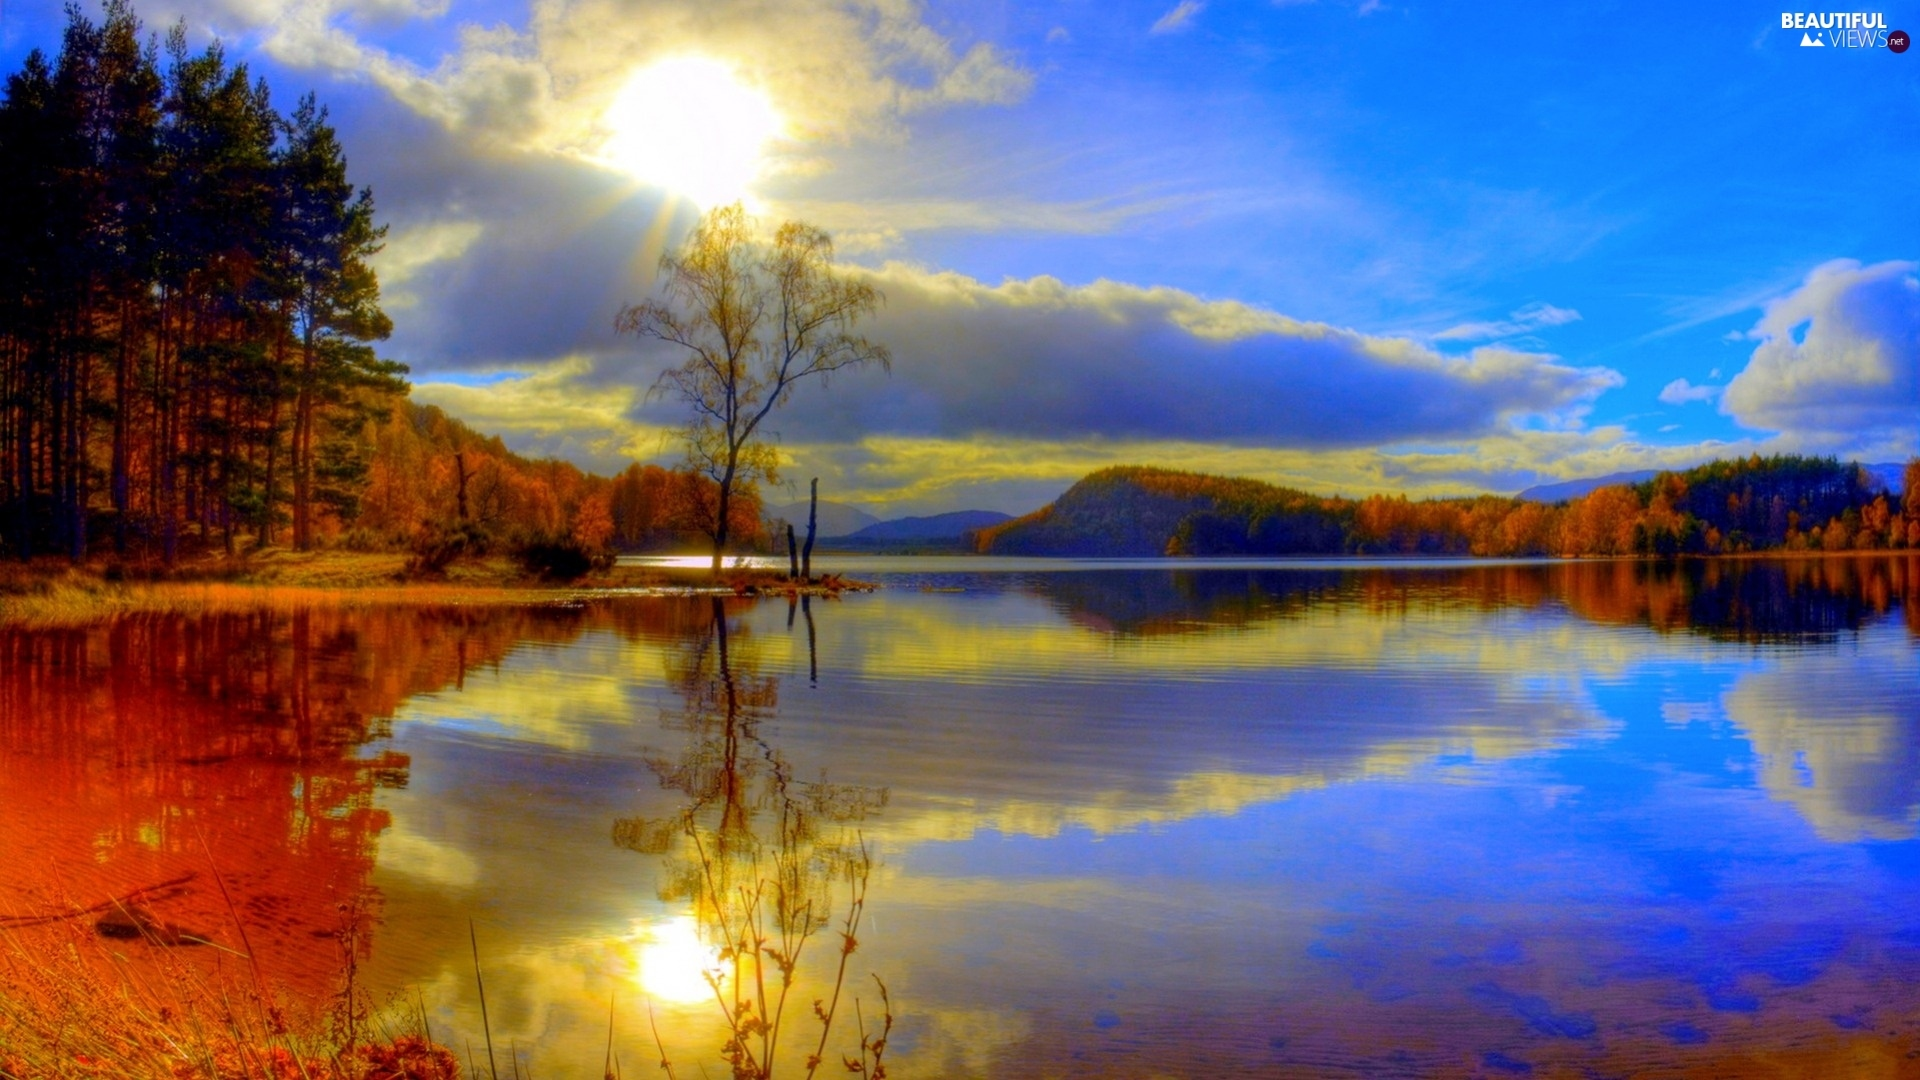 lake, reflection, autumn, forest